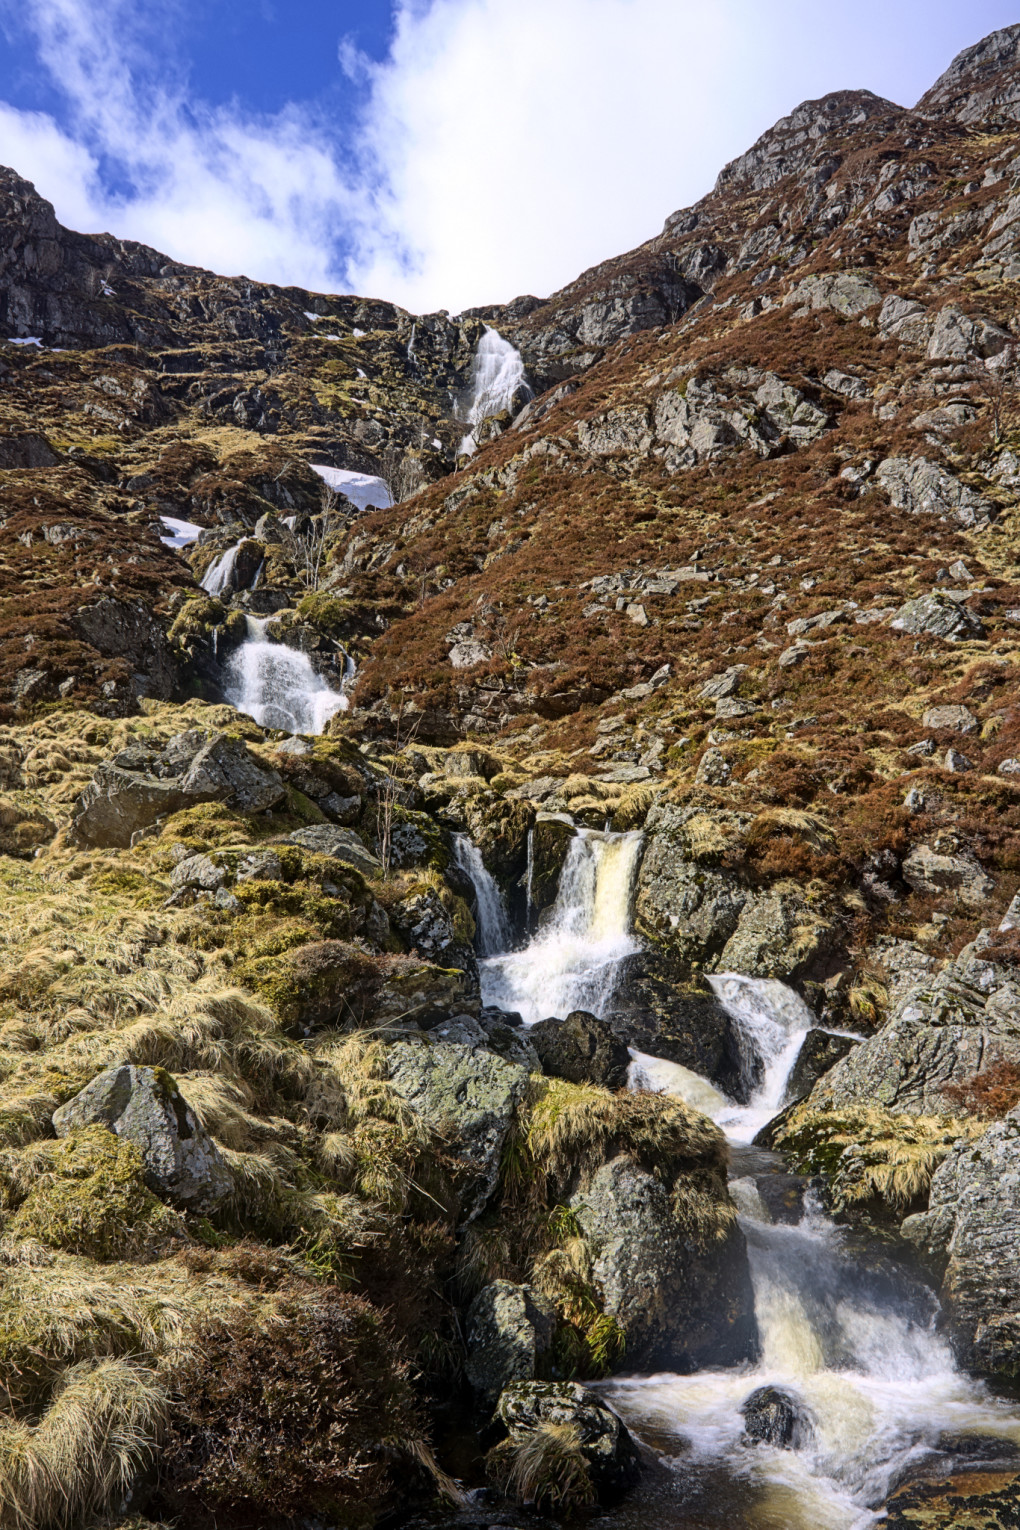 A burn cascading through several small waterfalls from the top of Corrie Fee.